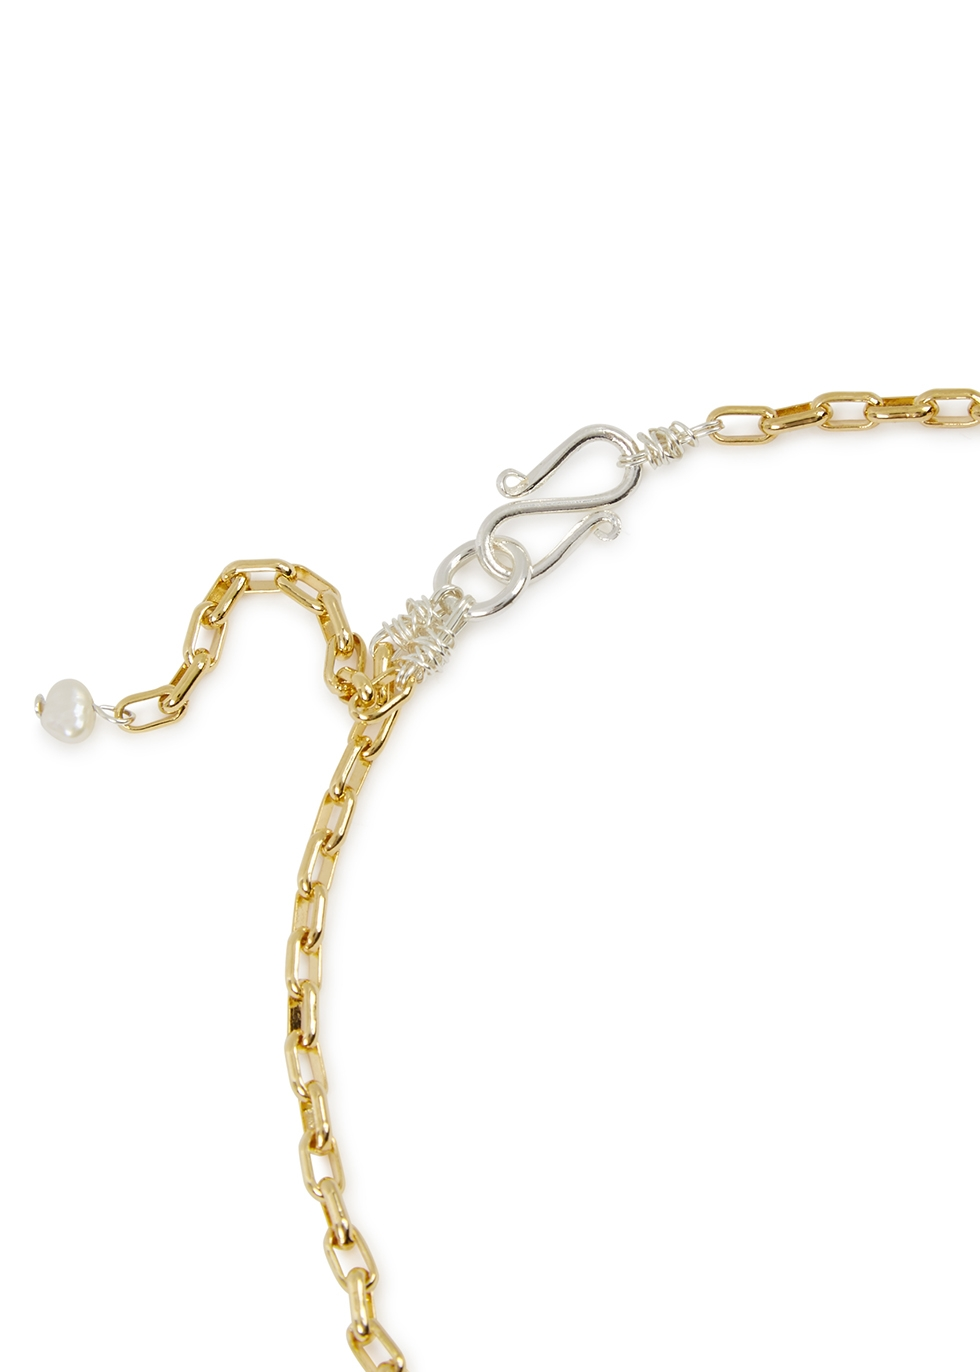 La Rêve gold-plated necklace - WALD Berlin